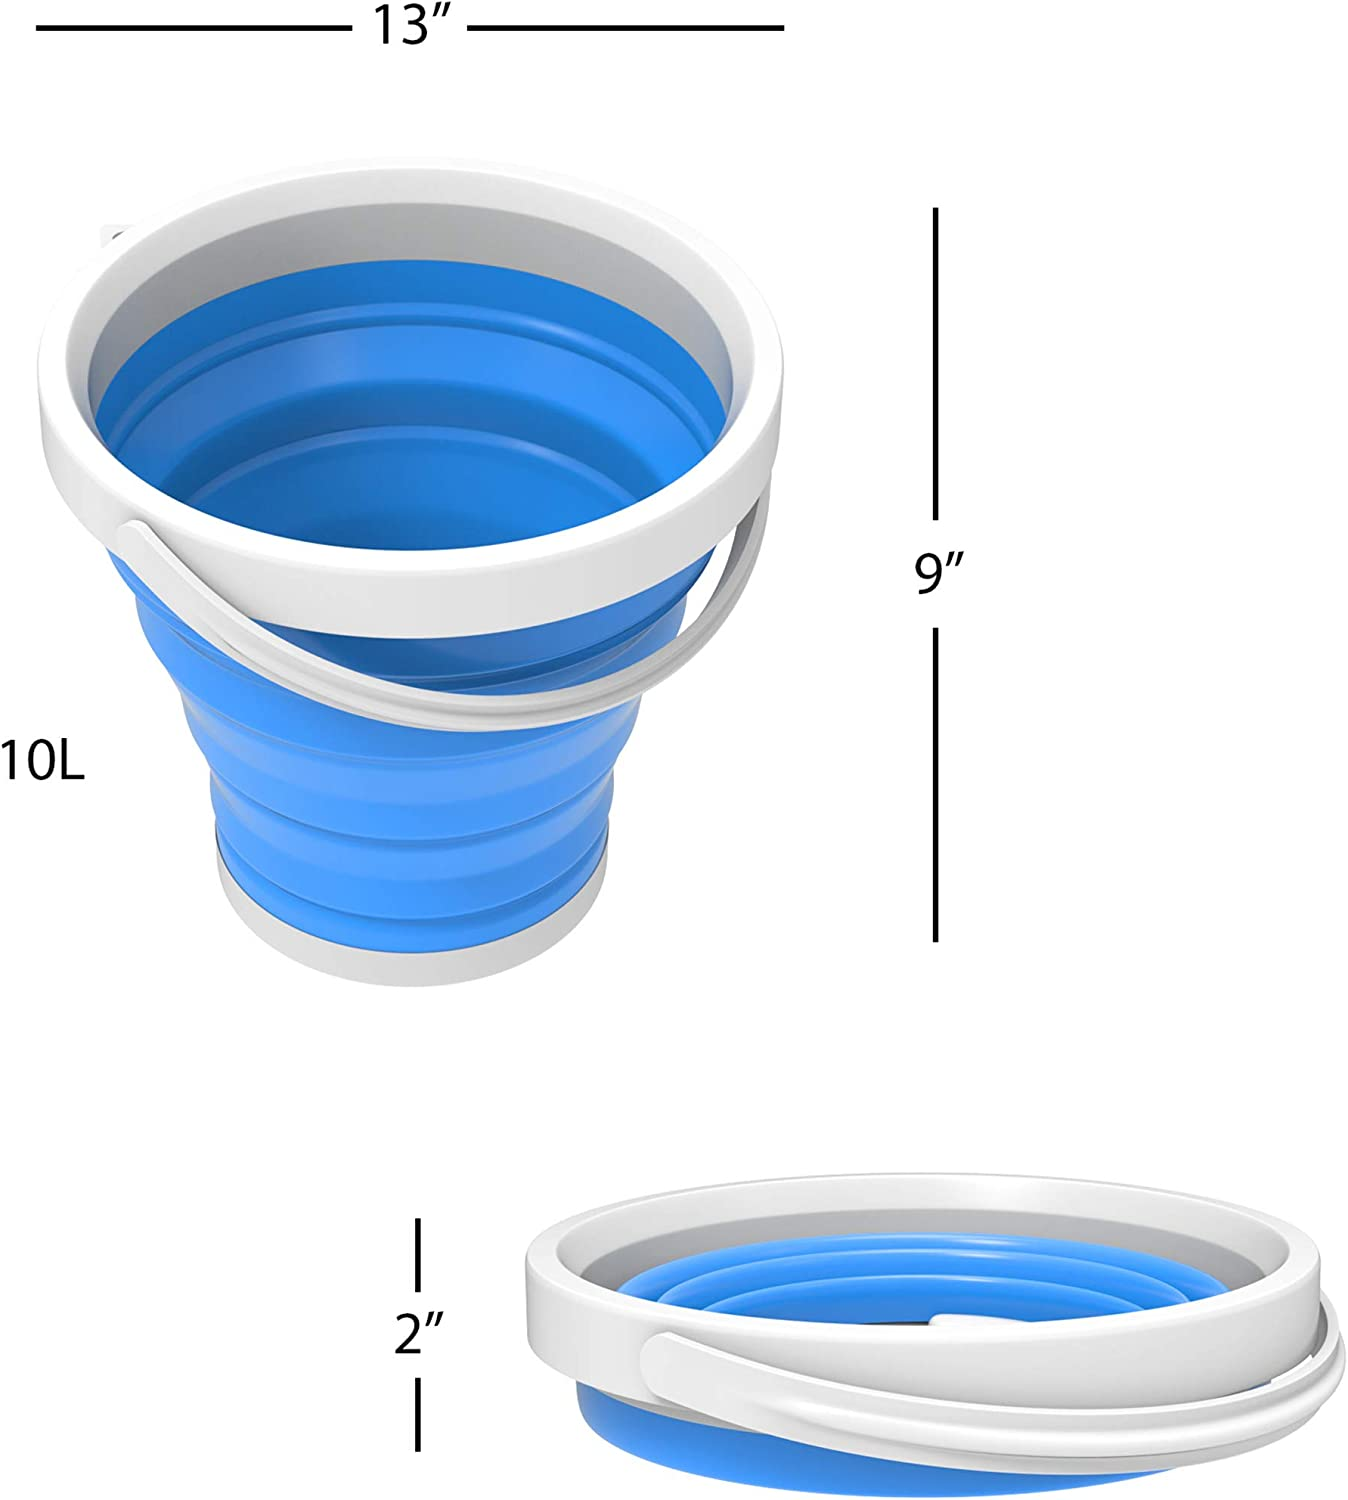 Fishing More Storage for Camping Wash Basin Tailgating Blue Wakeman Outdoors Multiuse Collapsible Portable Water//Ice Bucket